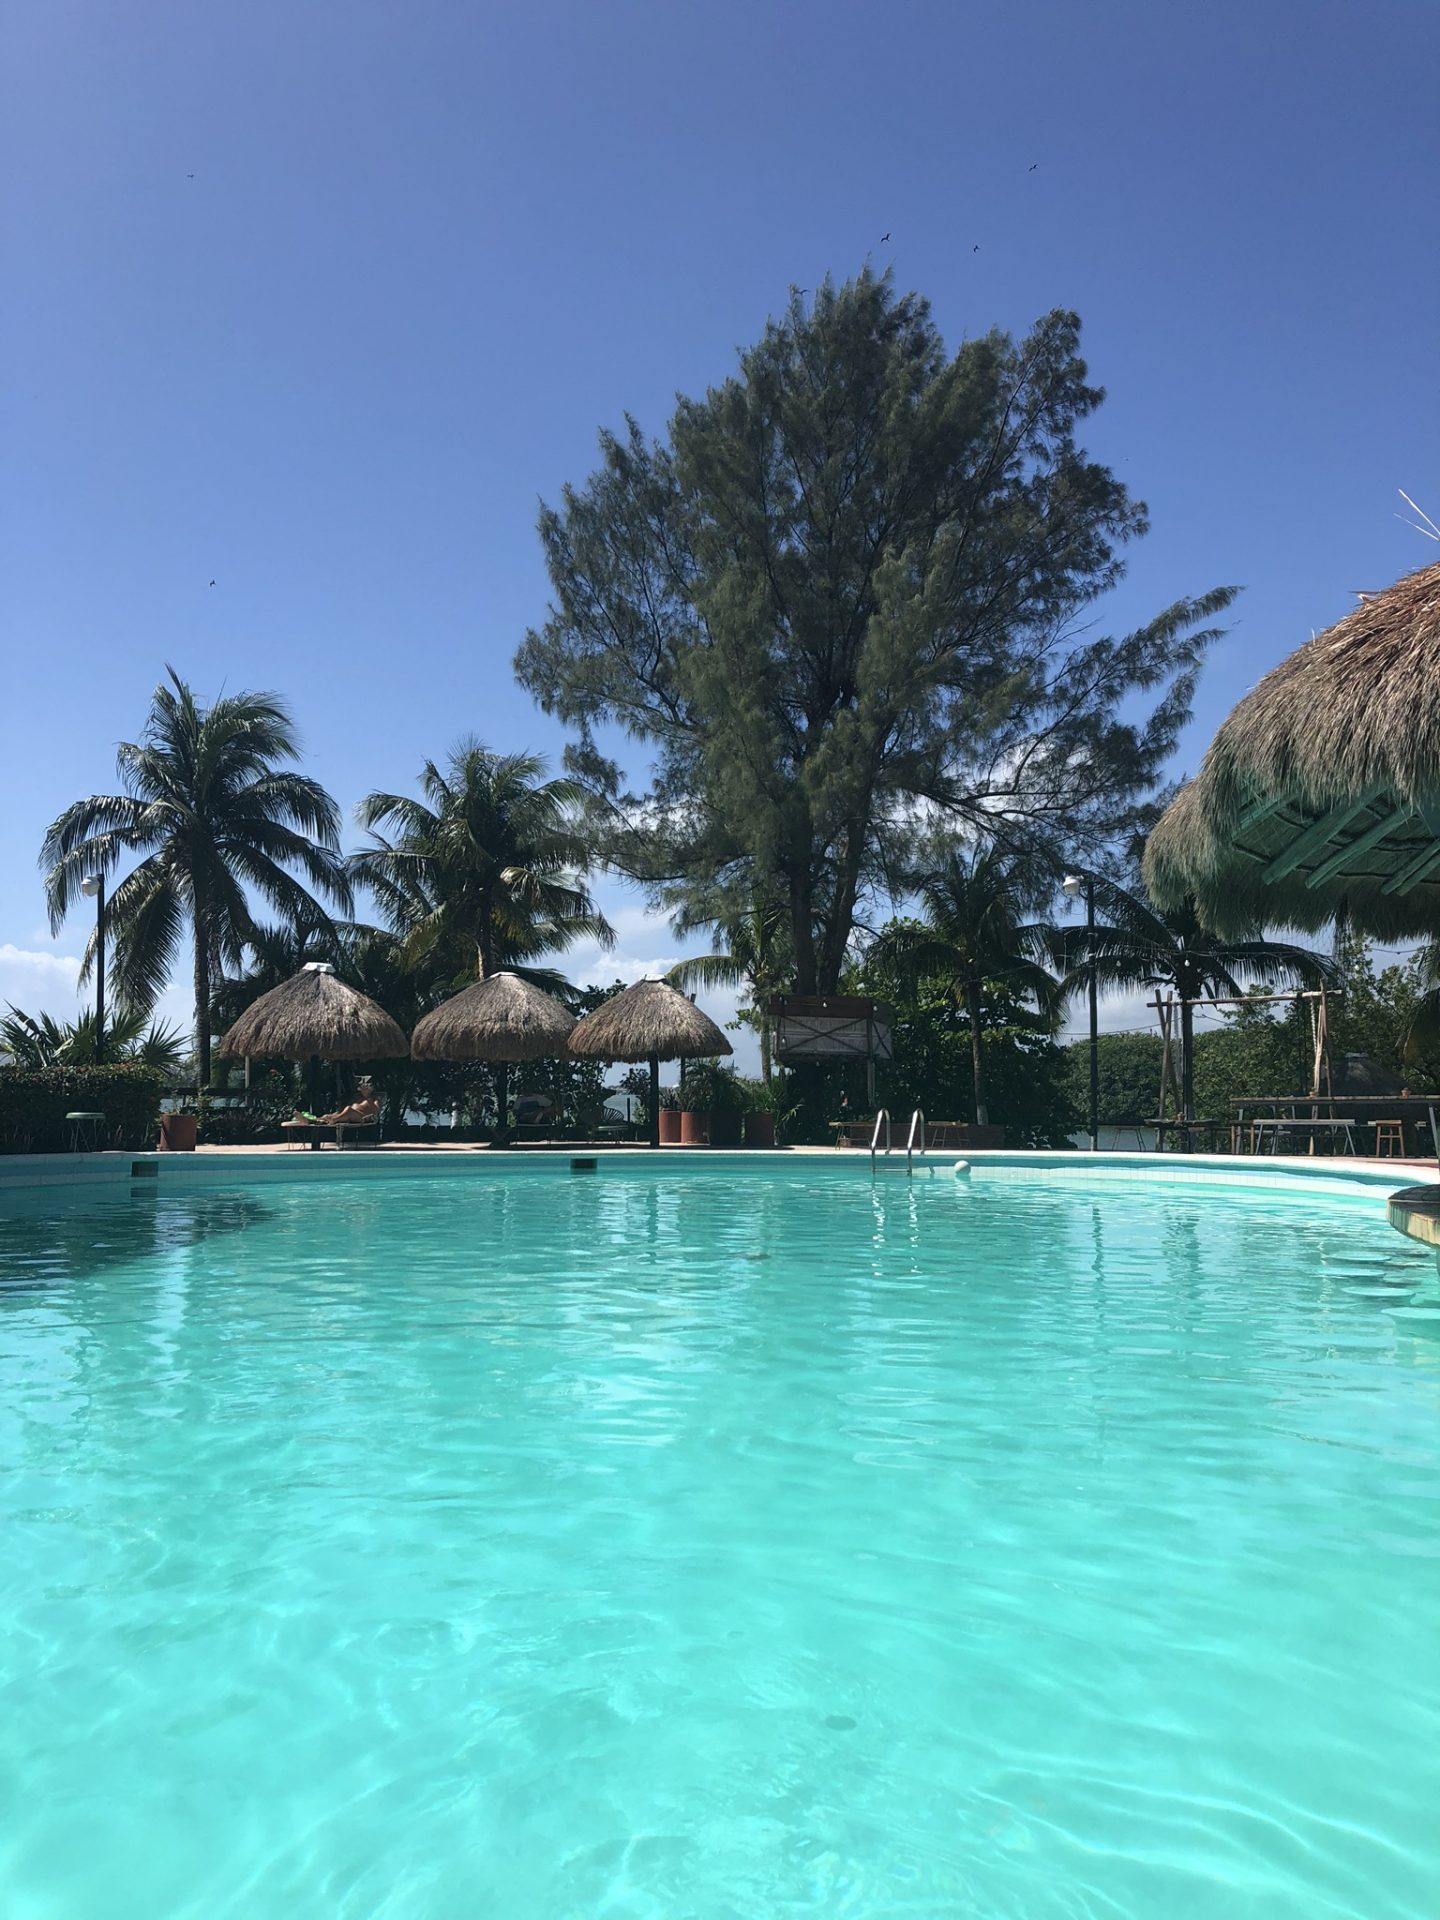 Sunbathing by the pool at Selina, Cancun in Mexico